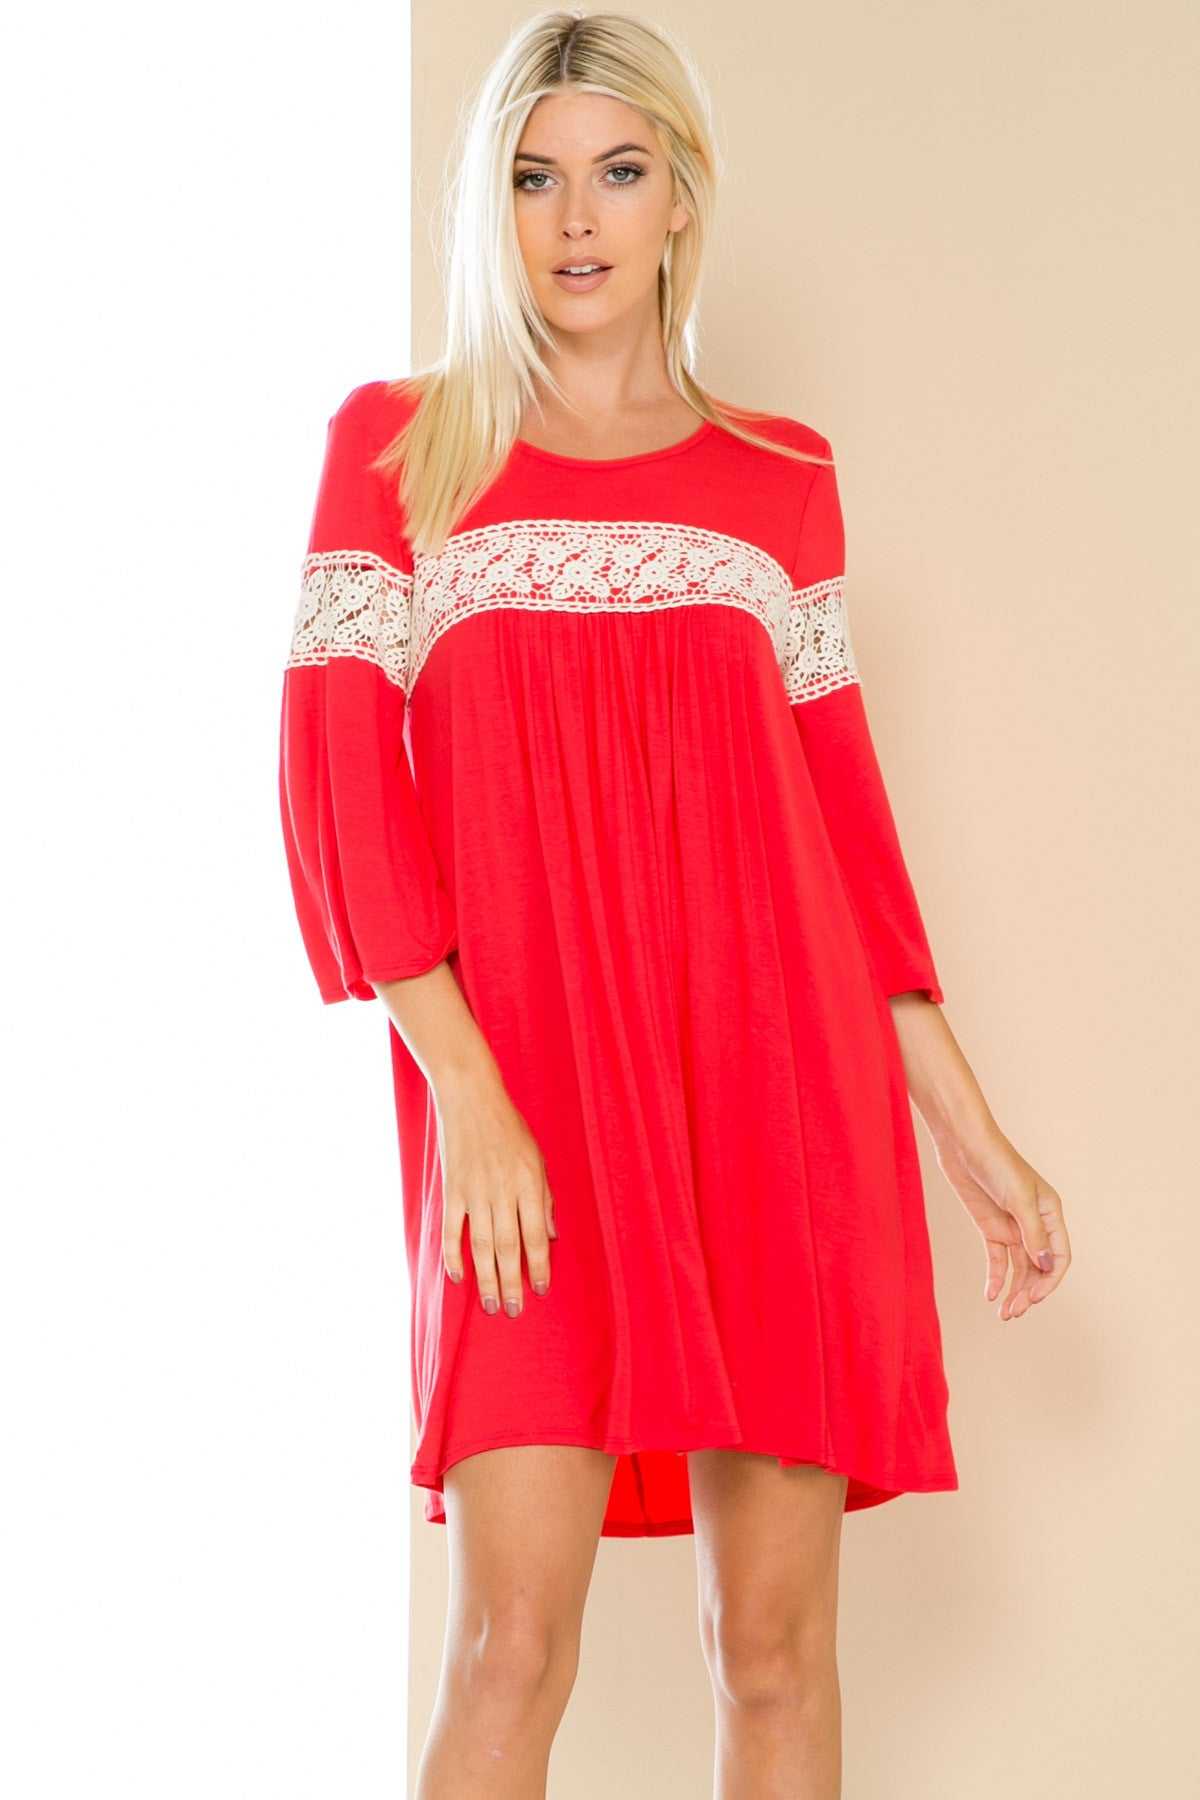 Coral Bell Sleeve Crochet Trim Swing Dress - Dresses - My Yuccie - 1